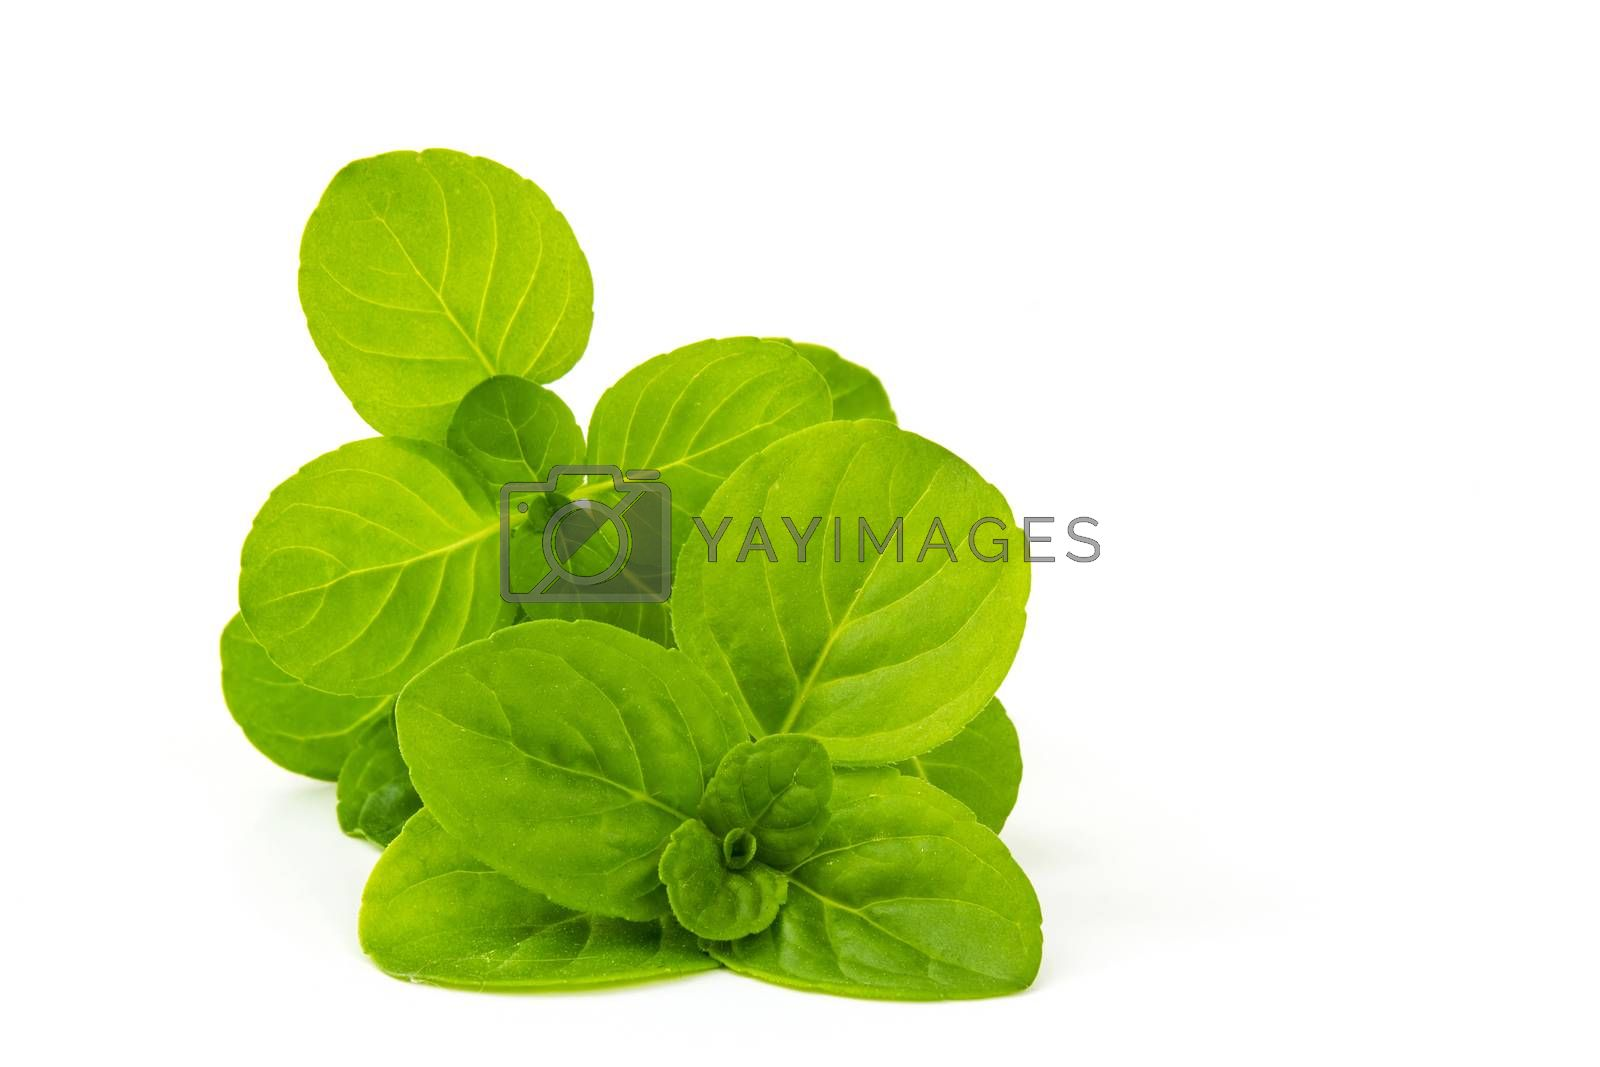 Royalty free image of mint leaves isolated on white background by miradrozdowski